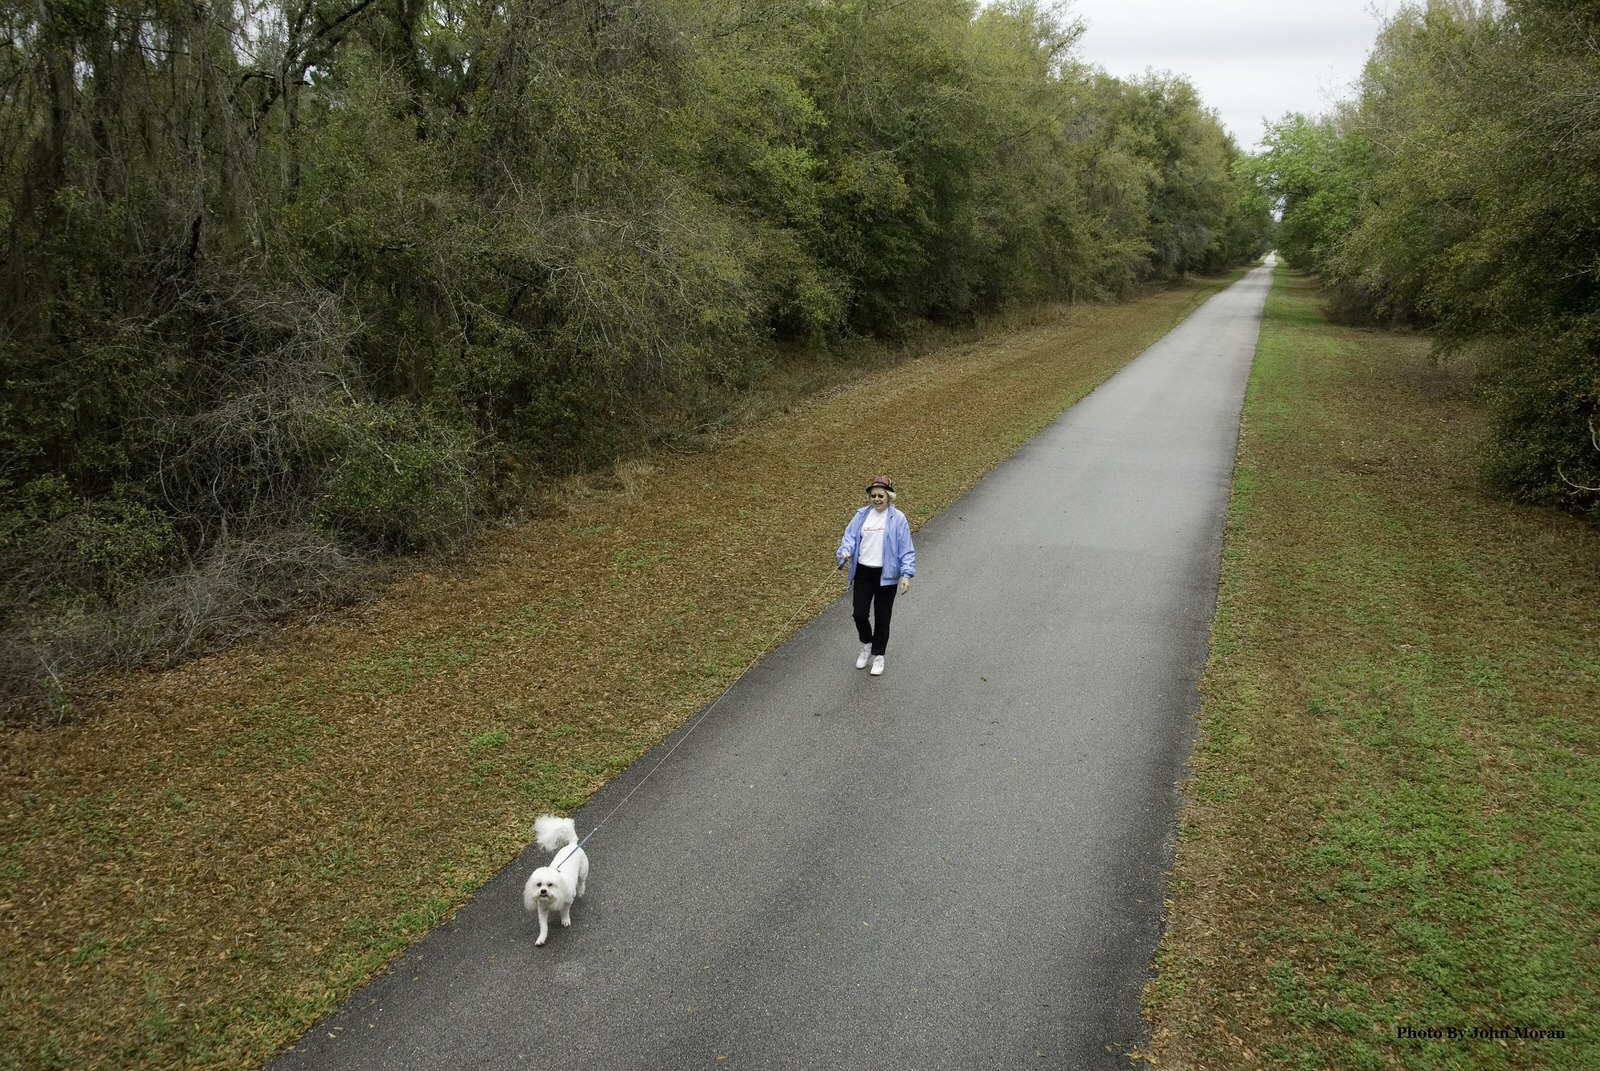 photo: Dog walker on trail. Photo by FL Office of Greenways.